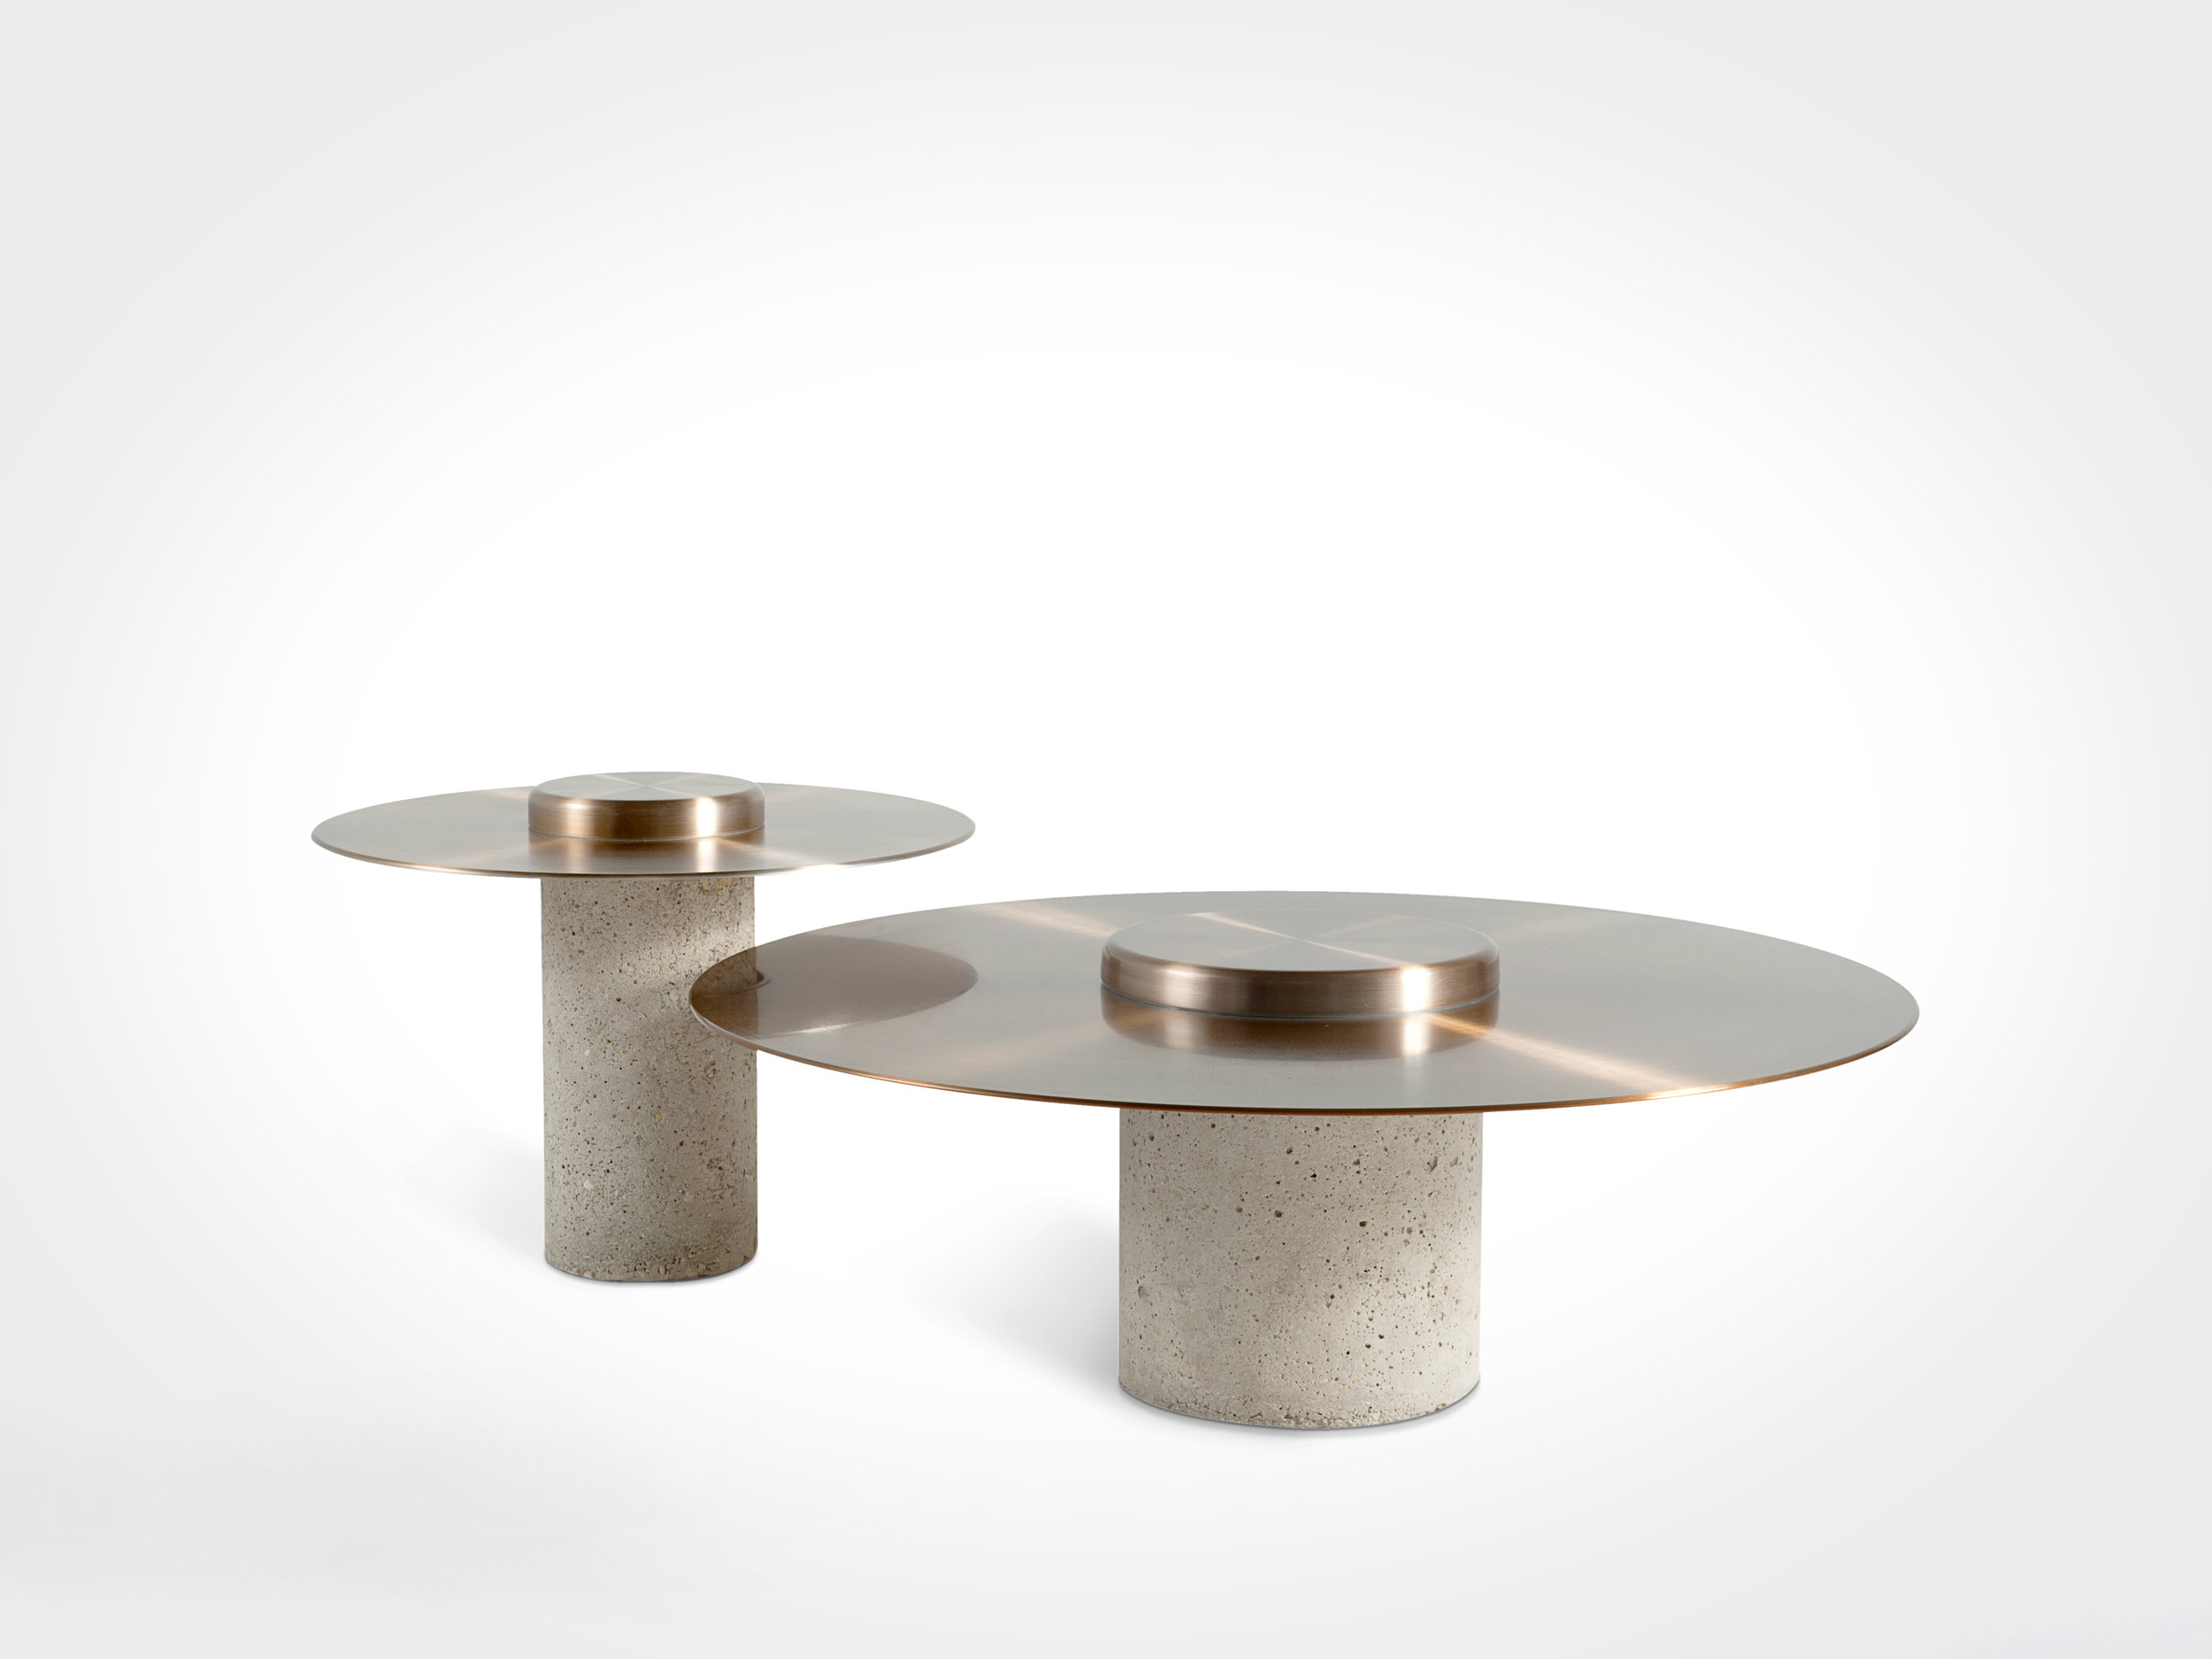 Canotier tables for Roche Bobois